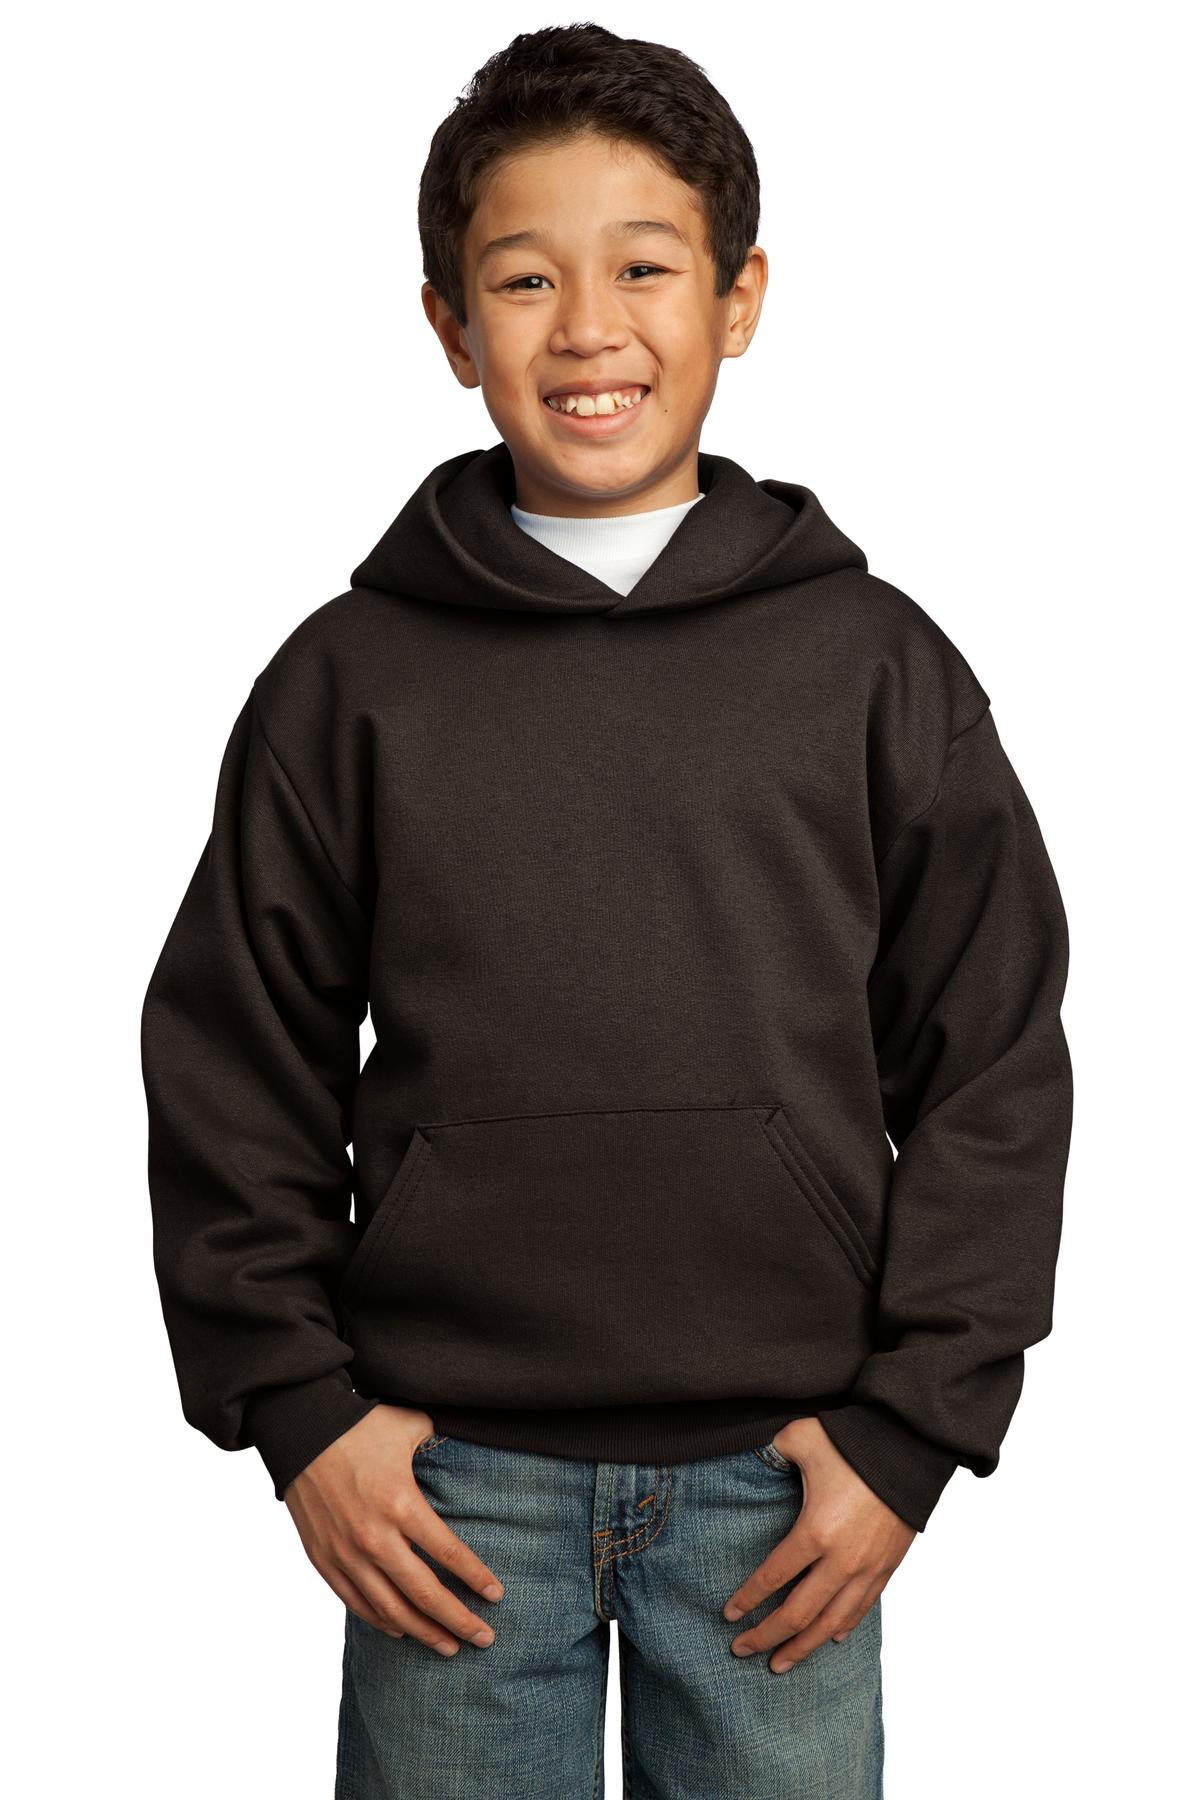 Dark Chocolate Brown Port & Company - Youth Core Fleece Pullover Hooded Sweatshirt.